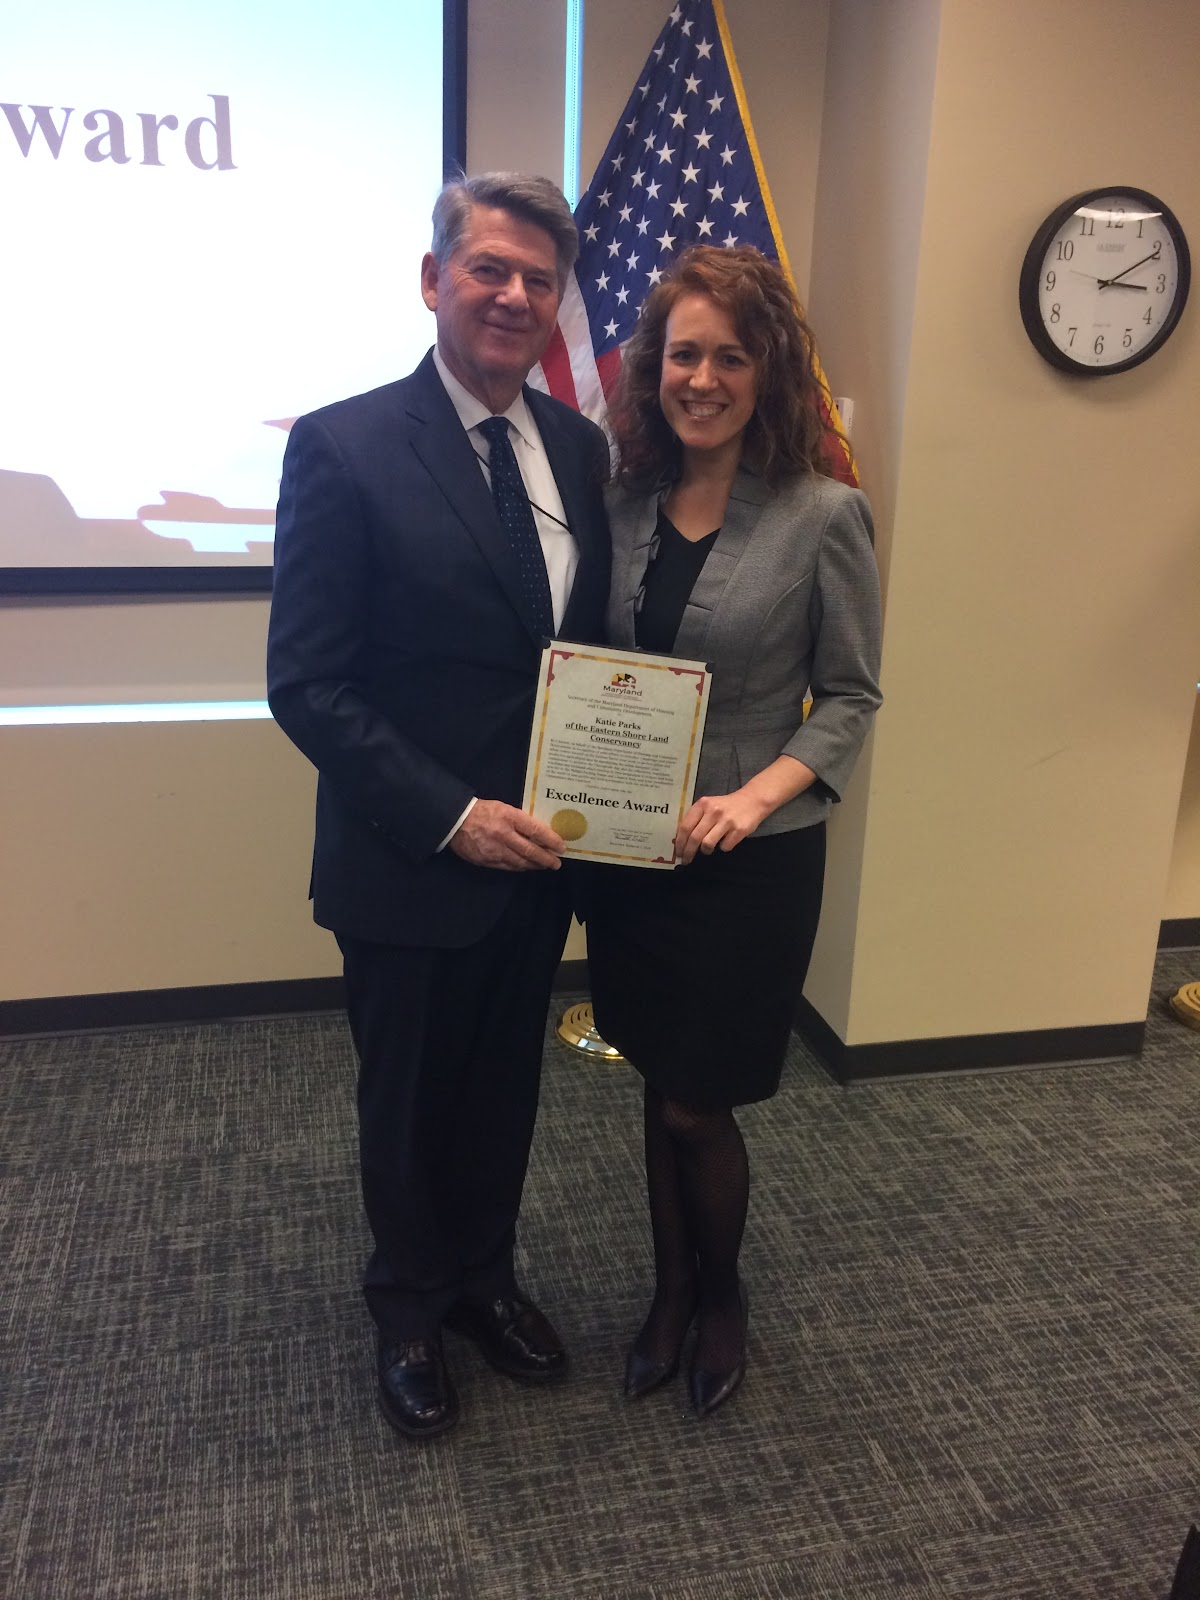 On behalf of the Eastern Shore Land Conservancy, Katie Parks accepts the Award of Excellence from Maryland Department of Housing and Community Development Secretary Kenneth Holt.